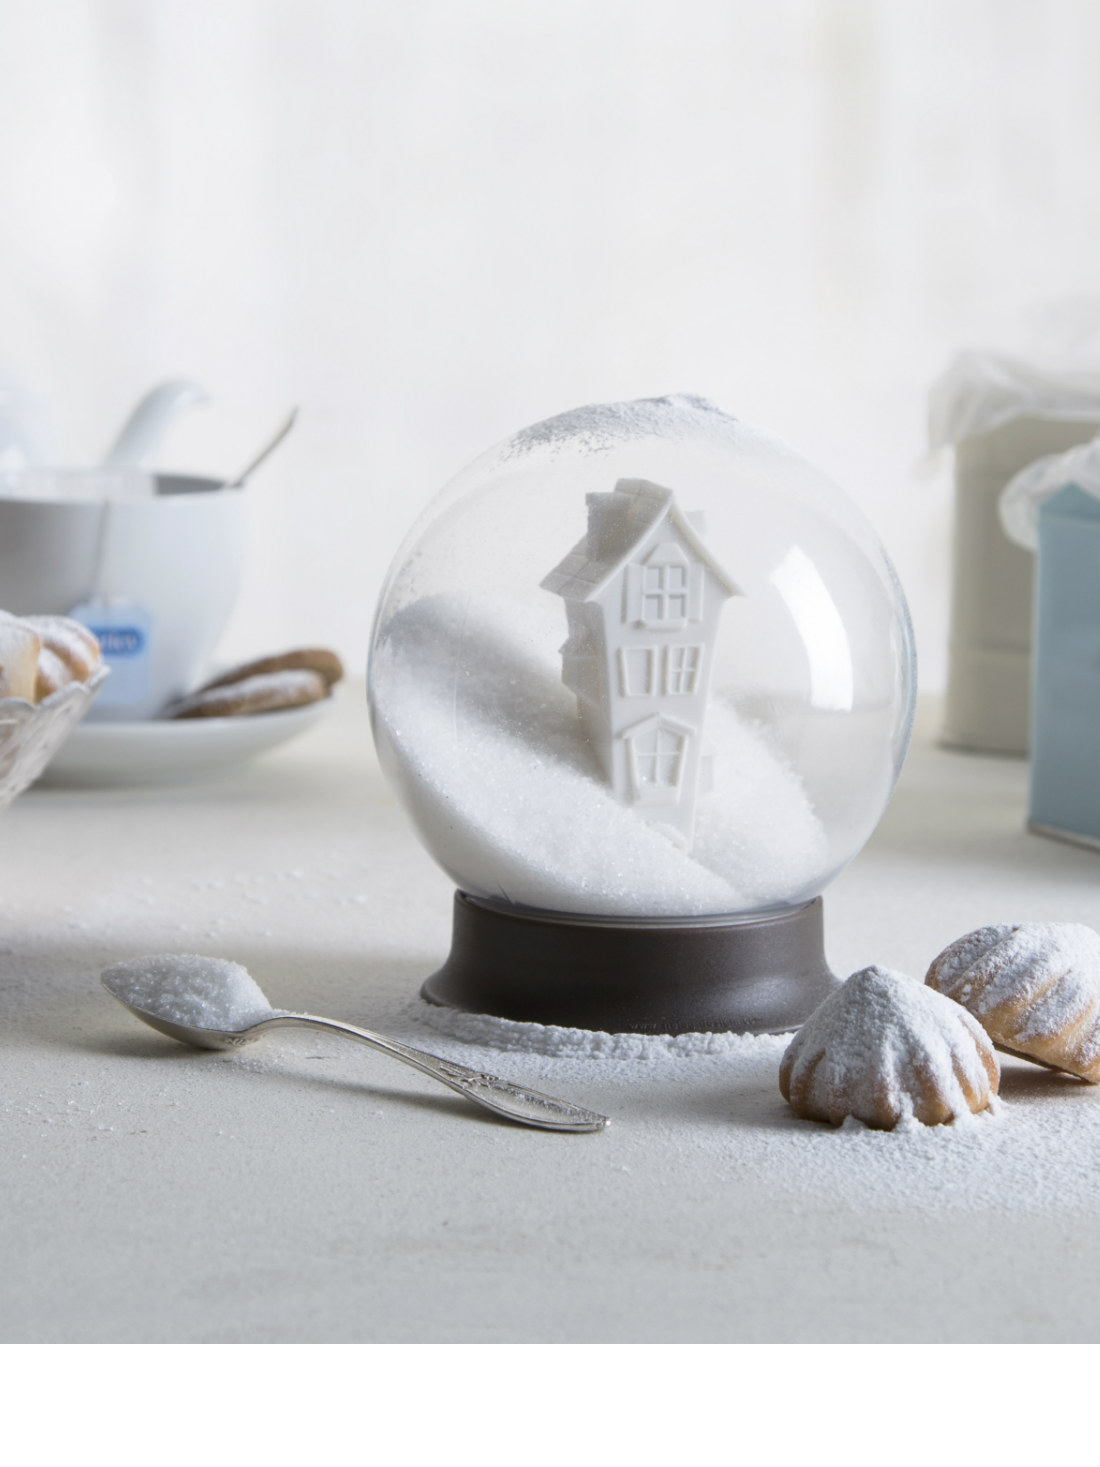 Snow Globe Sugar House Sugar Bowl from brightblueliving.com